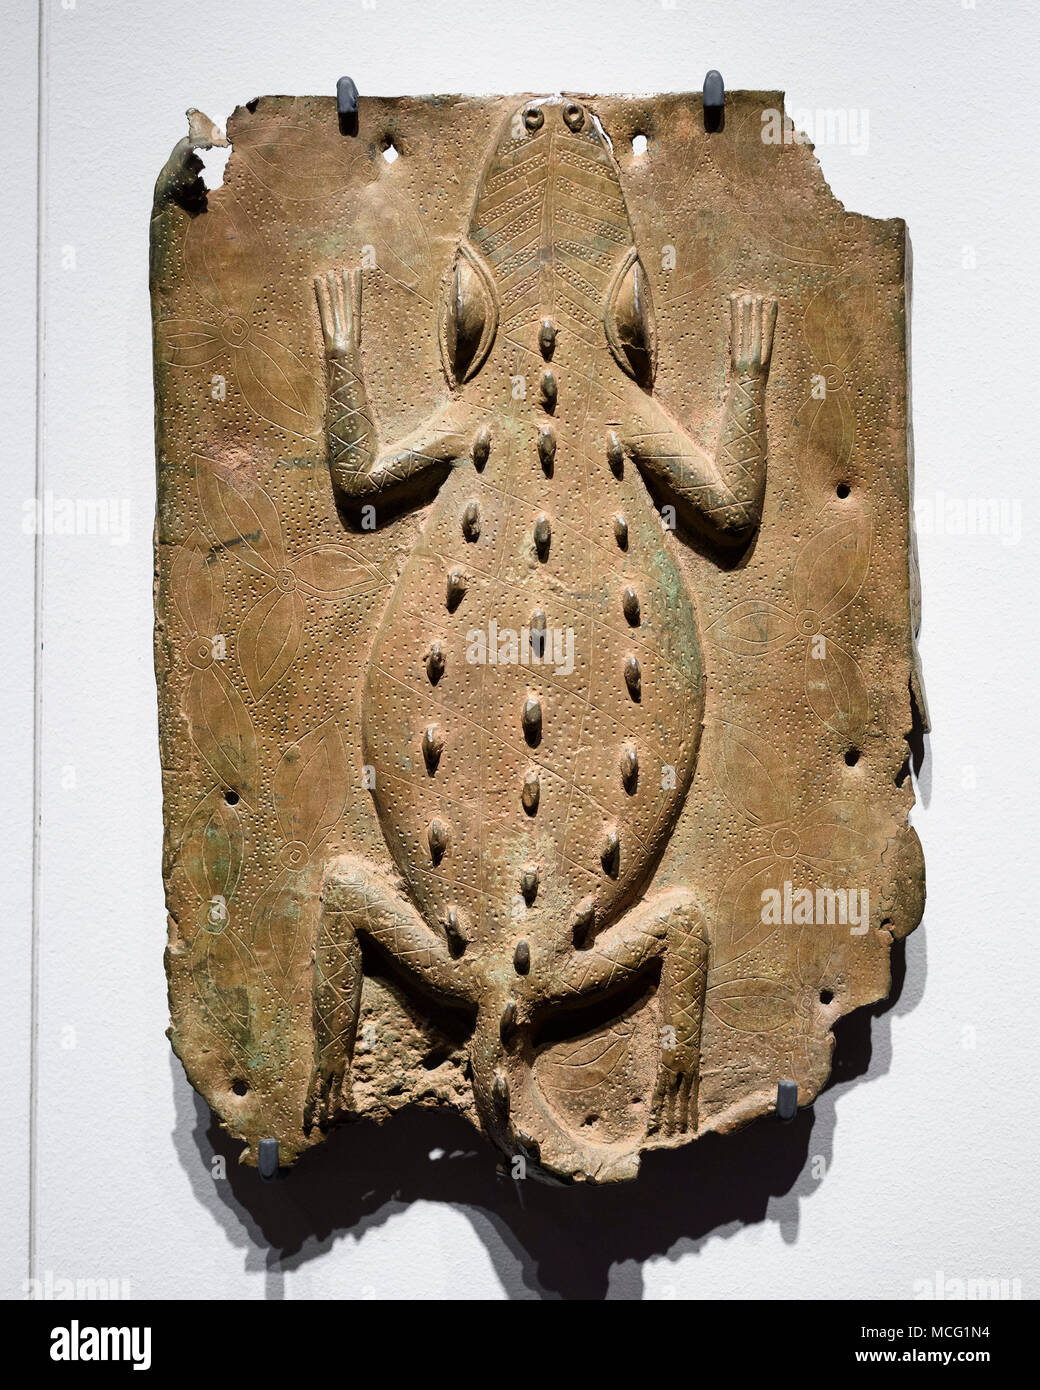 Berlin. Germany. Benin Bronzes. Representation of a crocodile, brass plaque. 16-17th century. From the royal court palace of the Kingdom of Benin. Eth - Stock Image